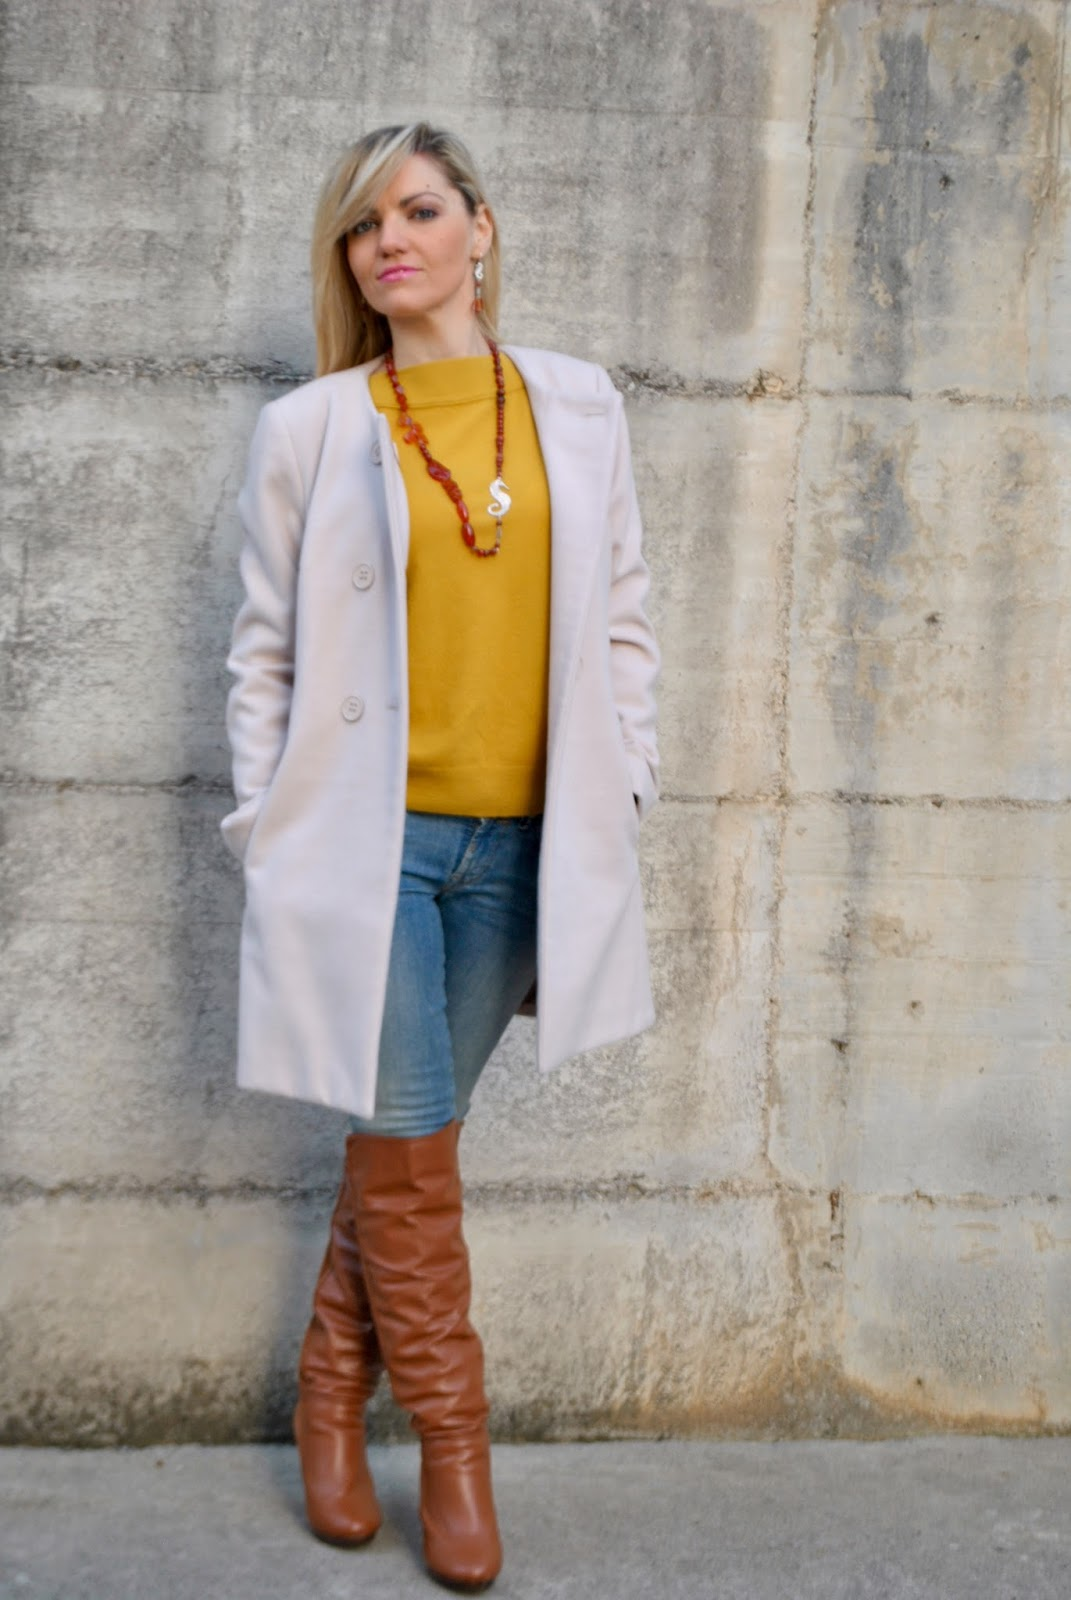 Ben noto Color-Block By FelyM.: OUTFIT: MUSTARD SWEATER AND SKINNY JEANS  QF69